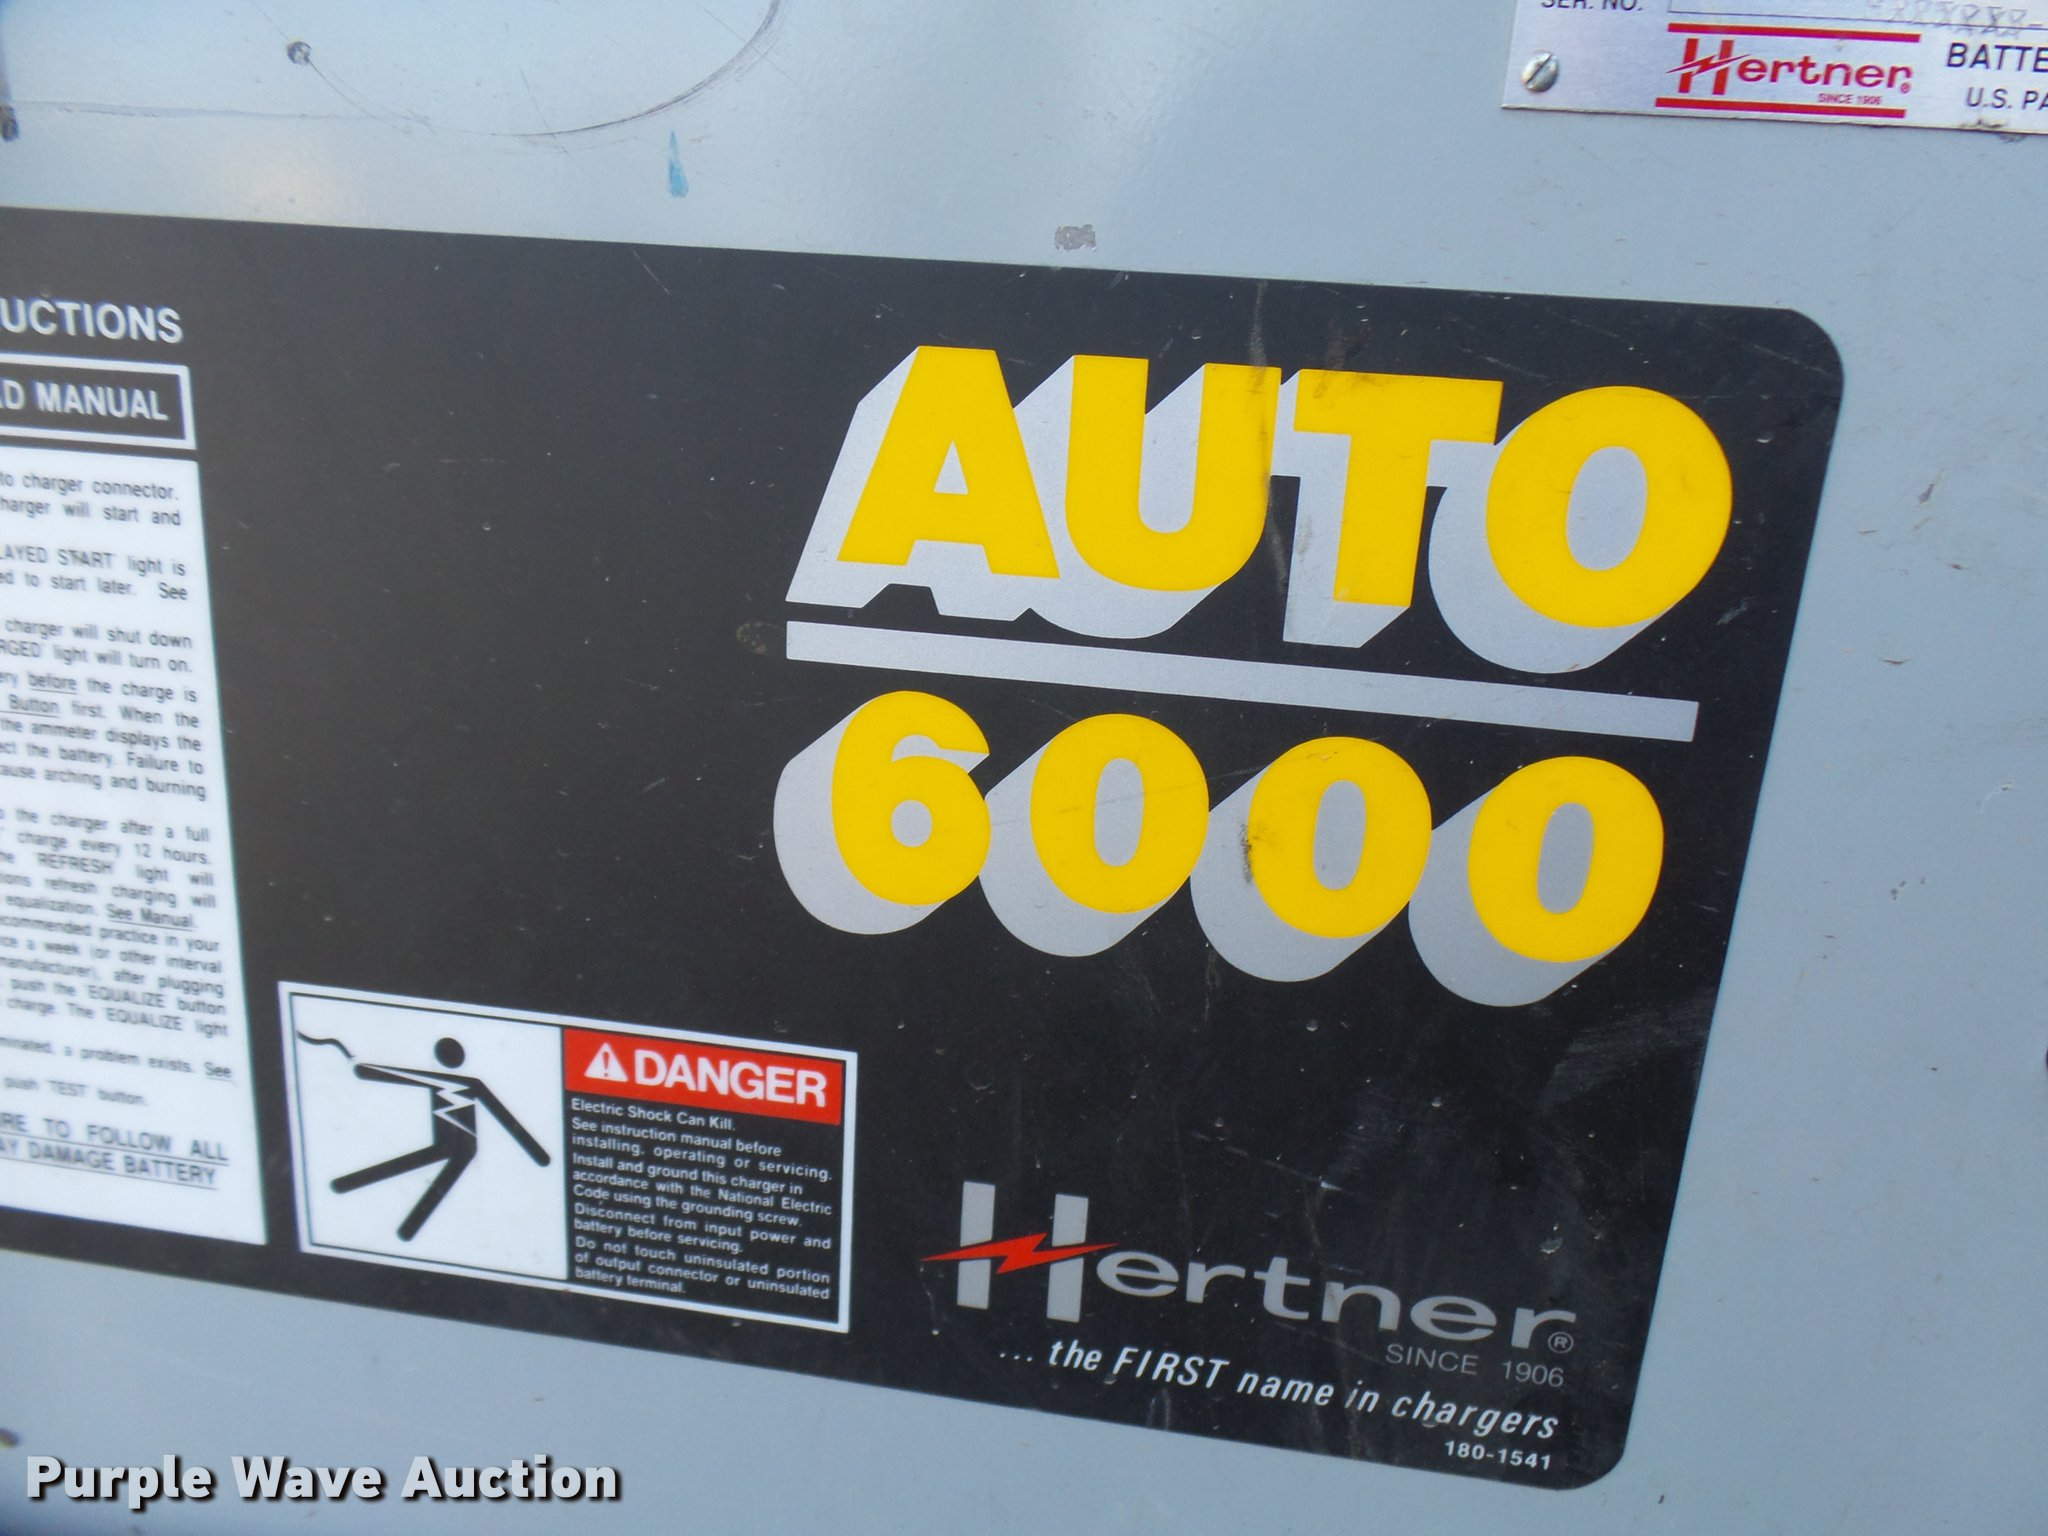 Hertner charger auto 6000 manual.